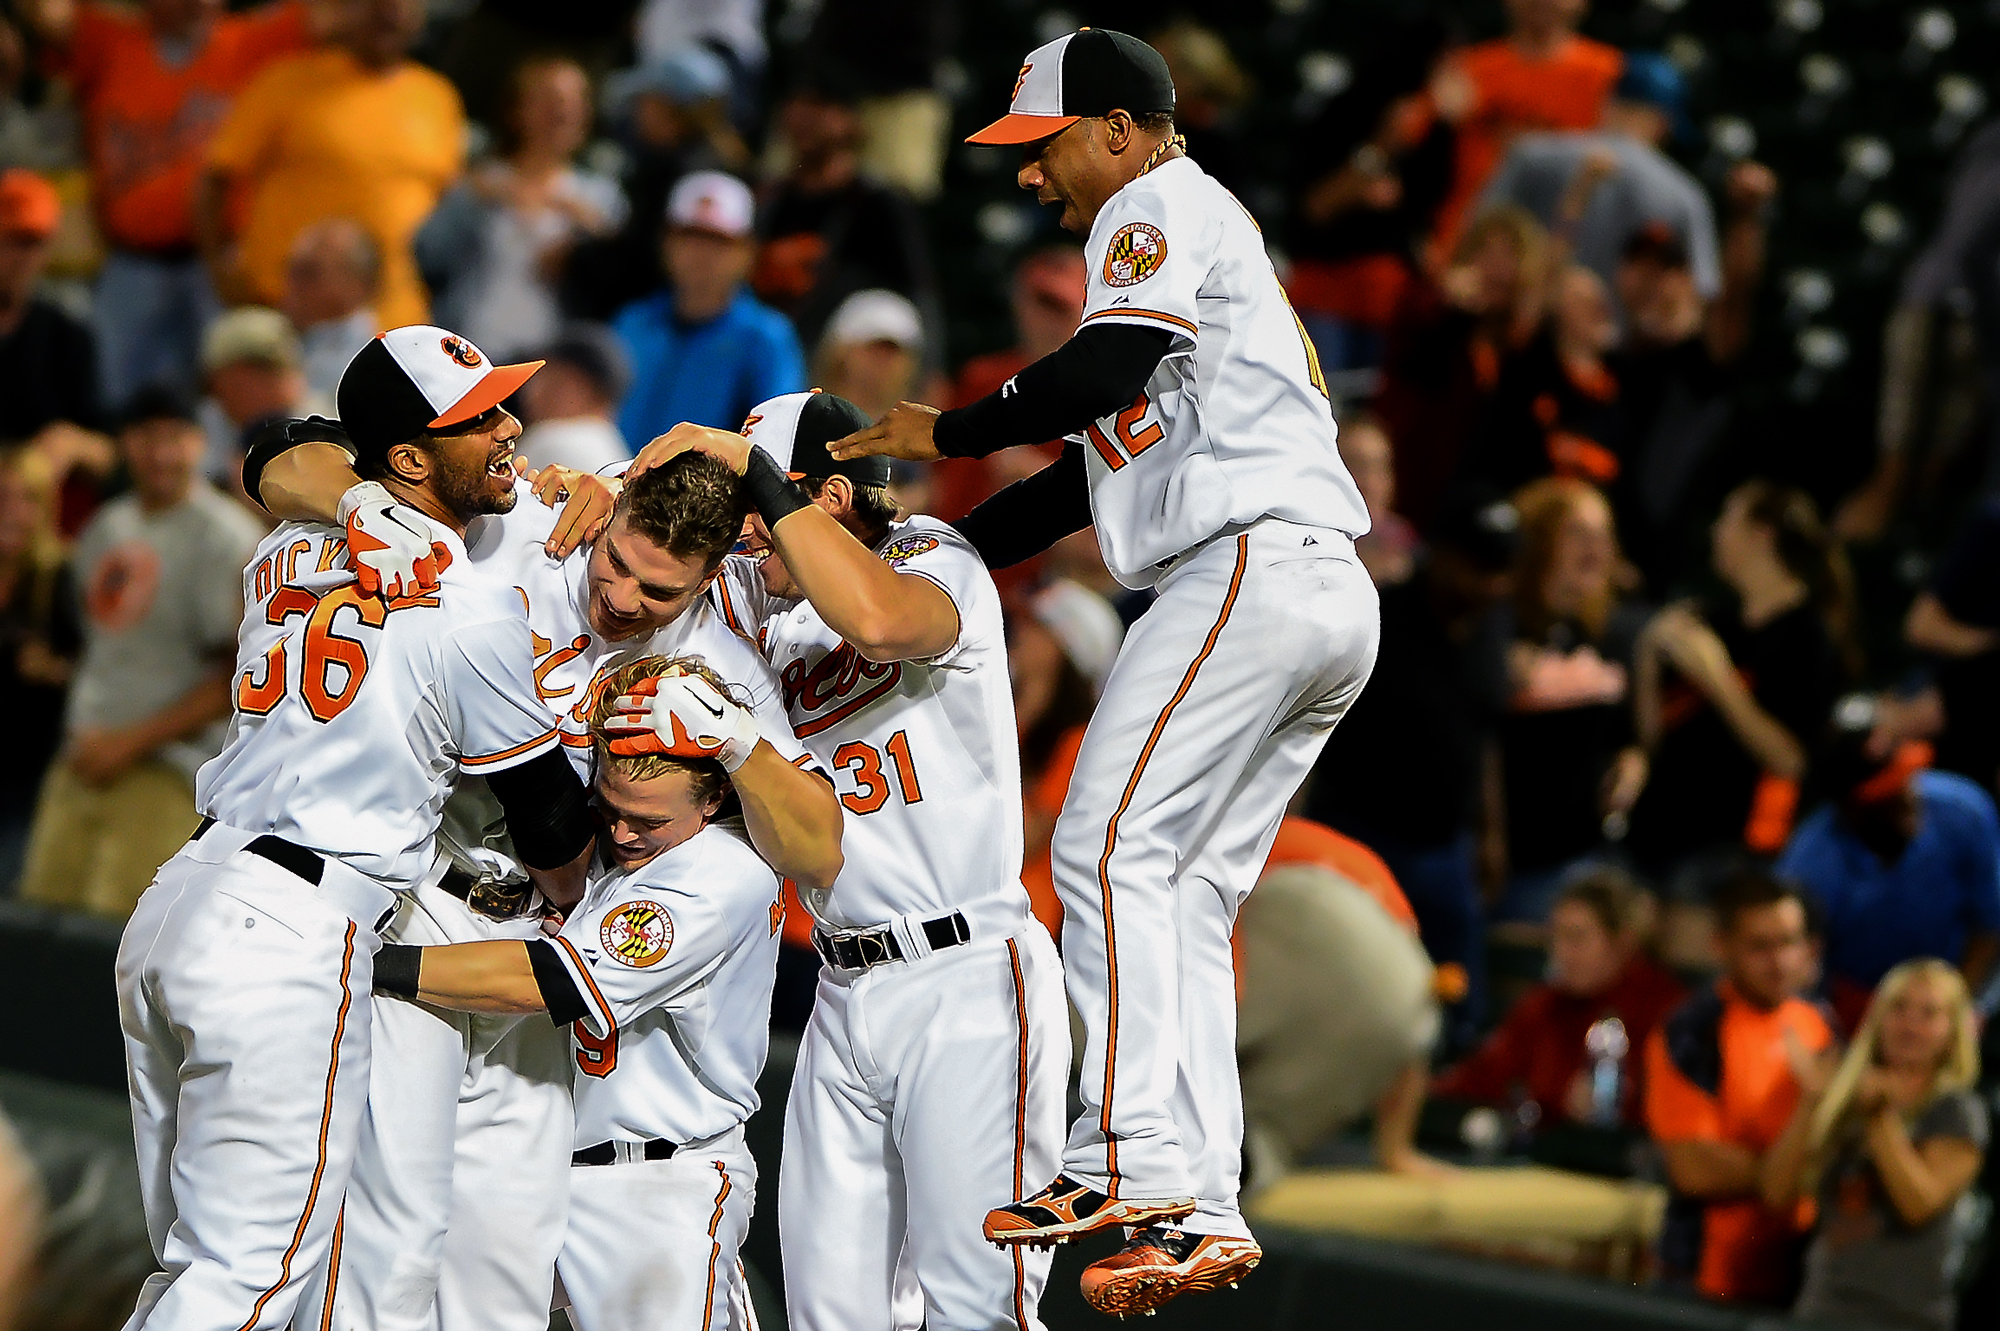 Chris Davis of the Baltimore Orioles is mobbed by his teammates after hitting the game winning RBIin the 13th inning against the Boston Red Sox at Oriole Park at Camden Yards on June 13, 2013 in Baltimore, Md.